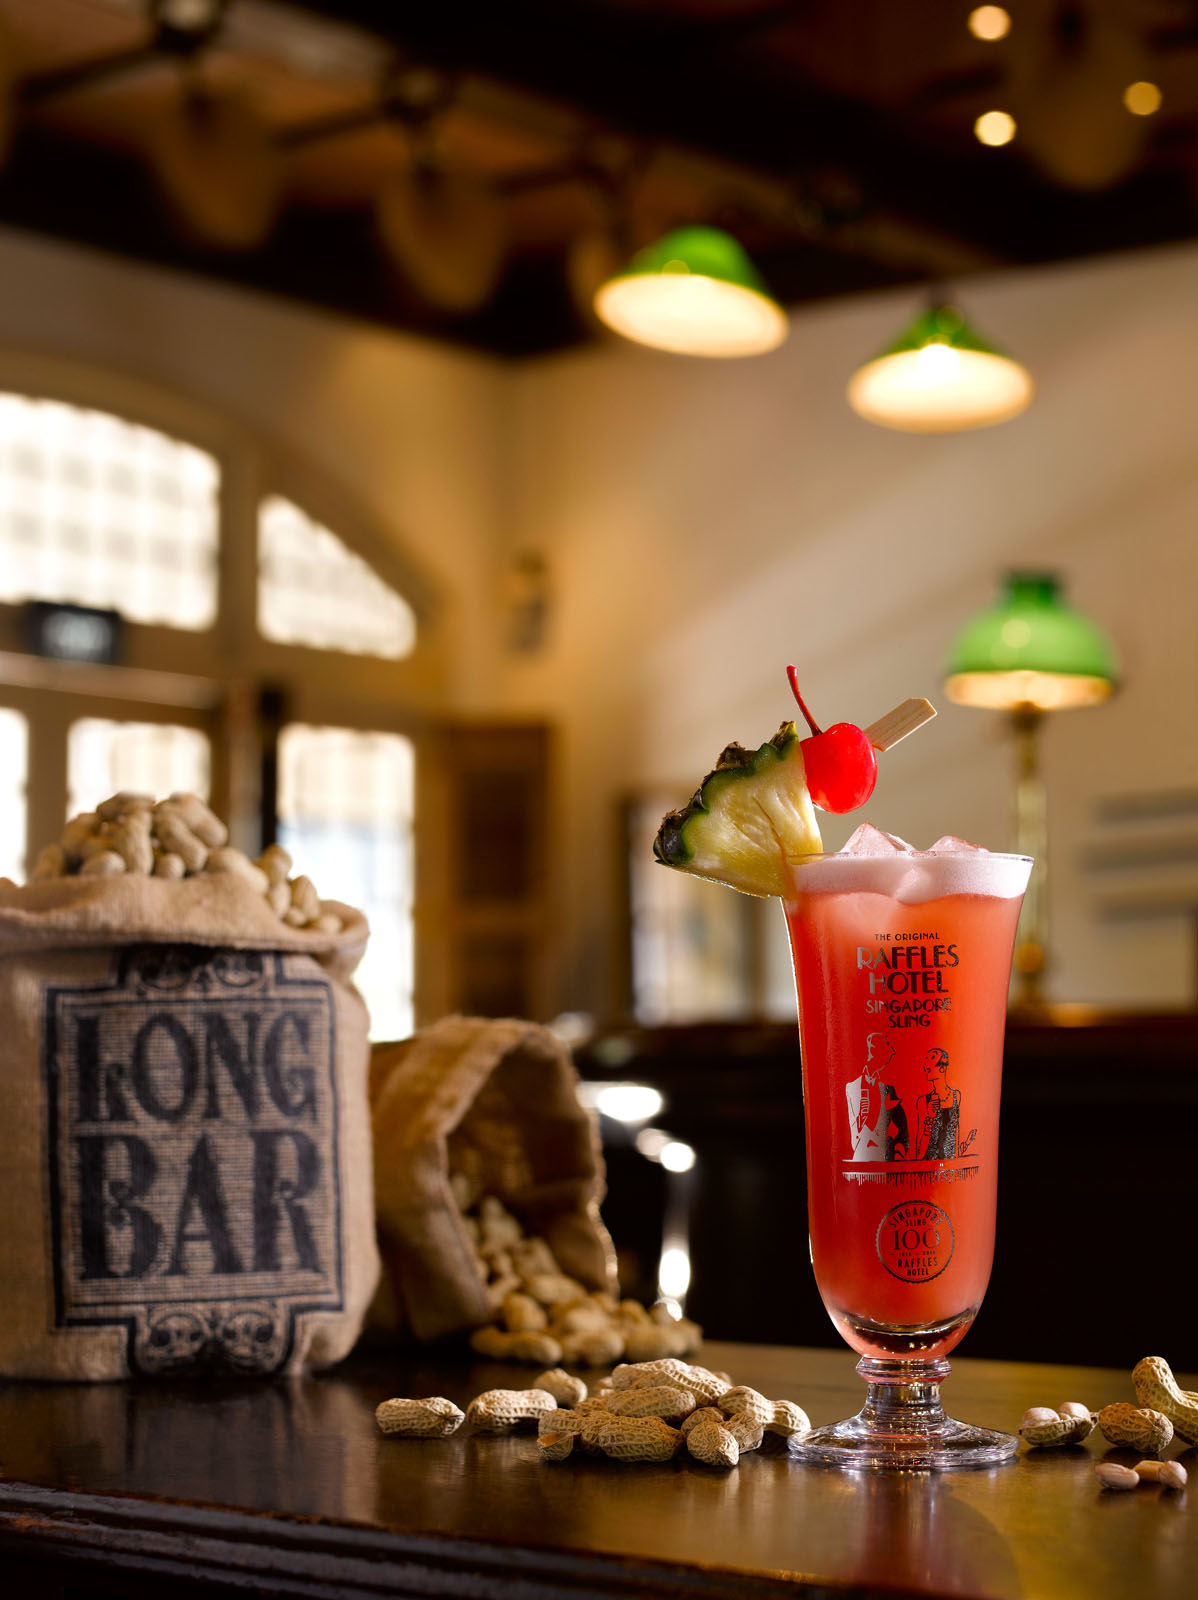 the Singapore Sling, created at the hotel, are part of a rich heritage